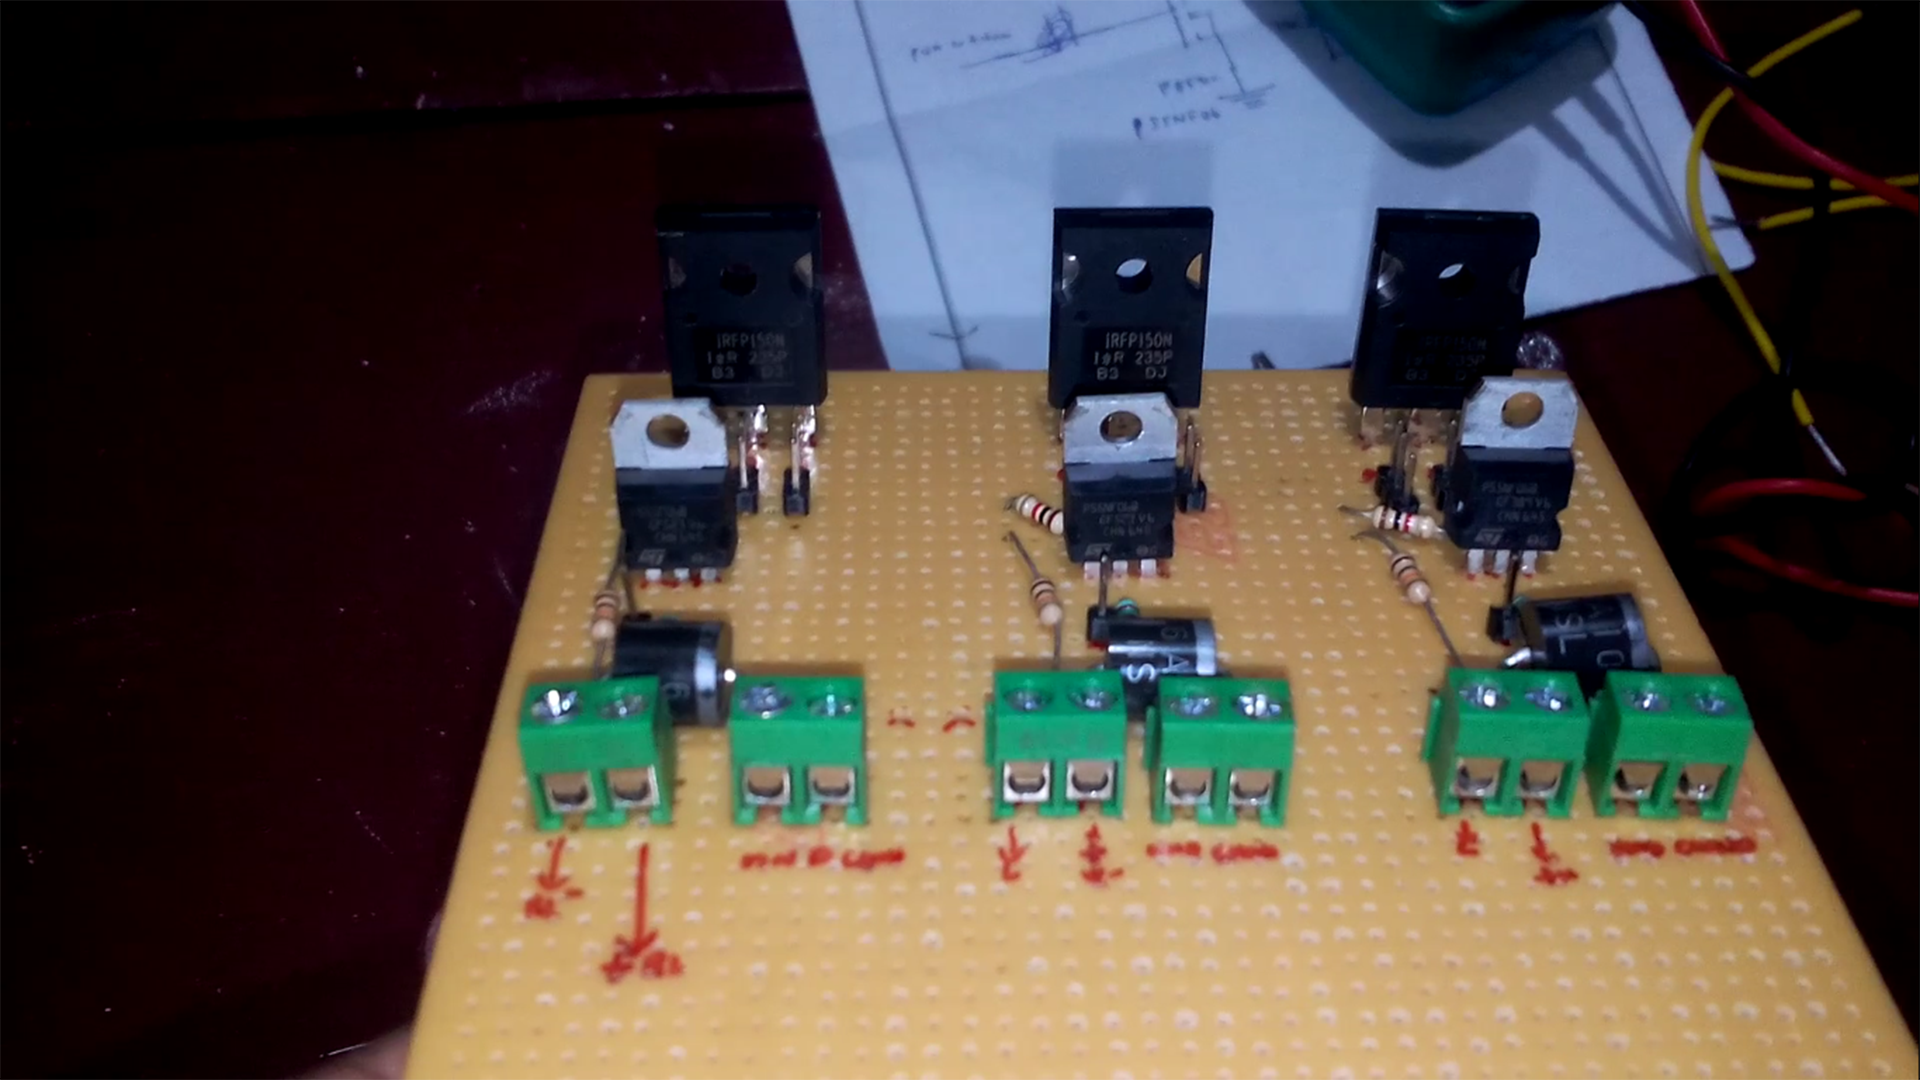 Diy 42amp Mosfet Based Pwm Motor Controller For Raspberry Pi Basics Circuits Arduino With